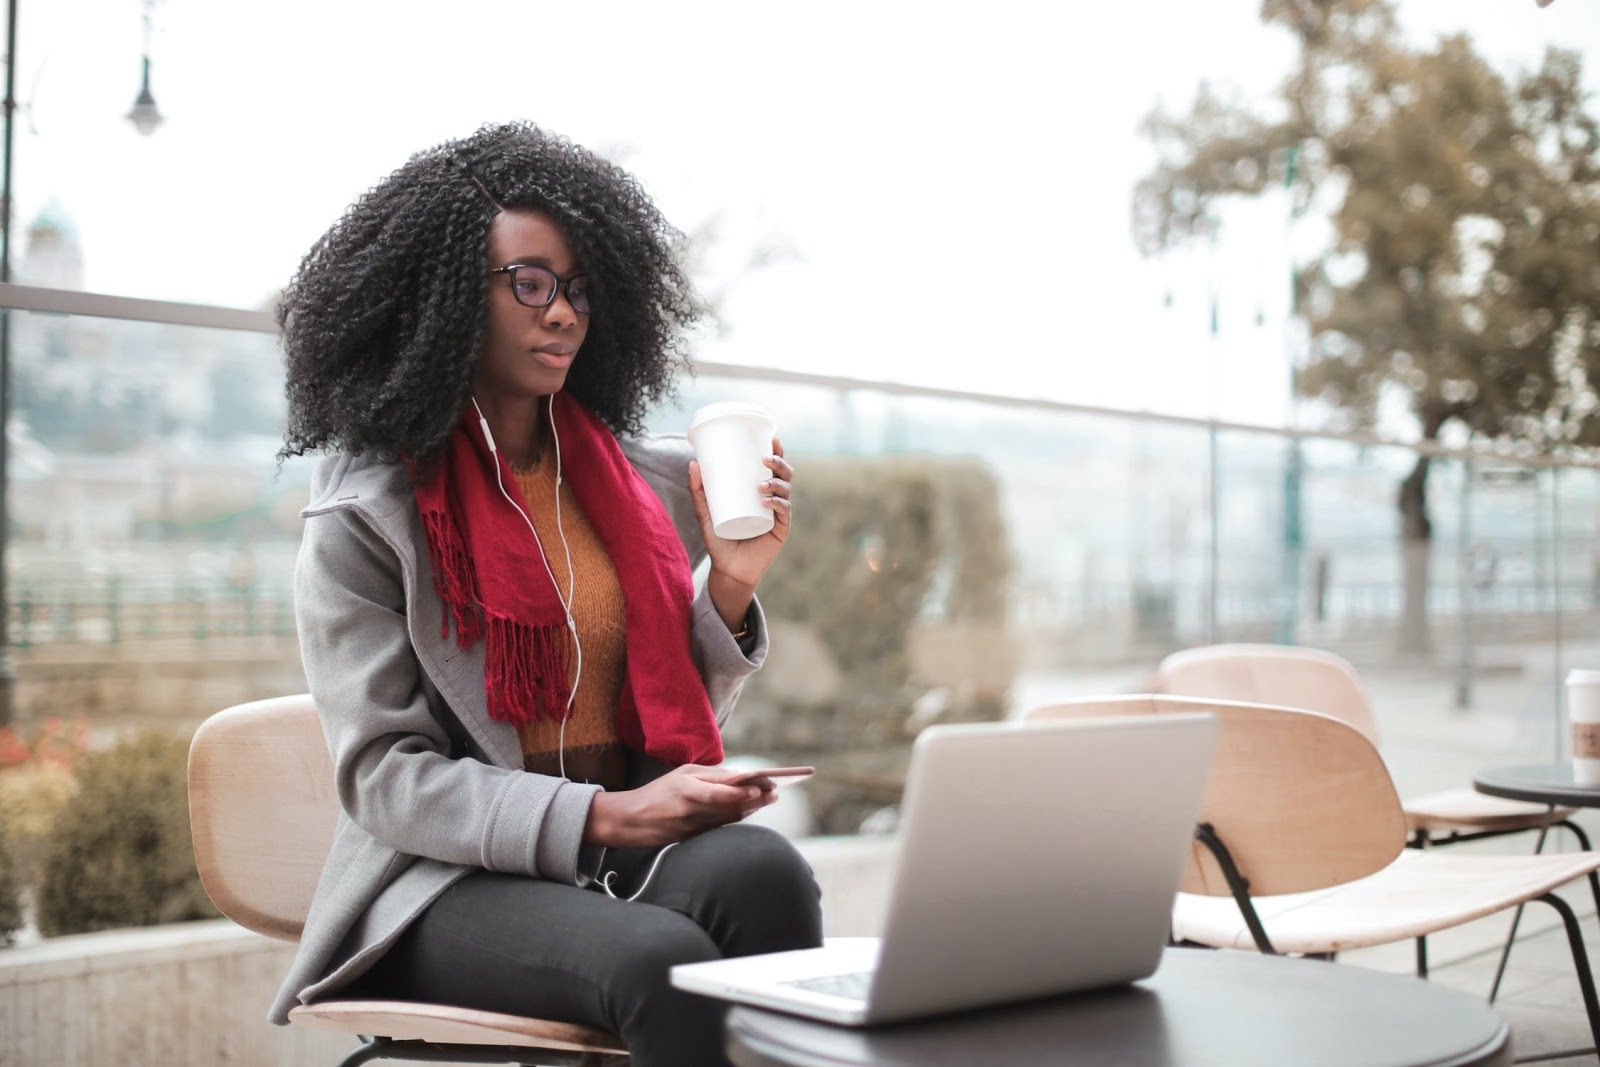 Woman on grey laptop with curly hair